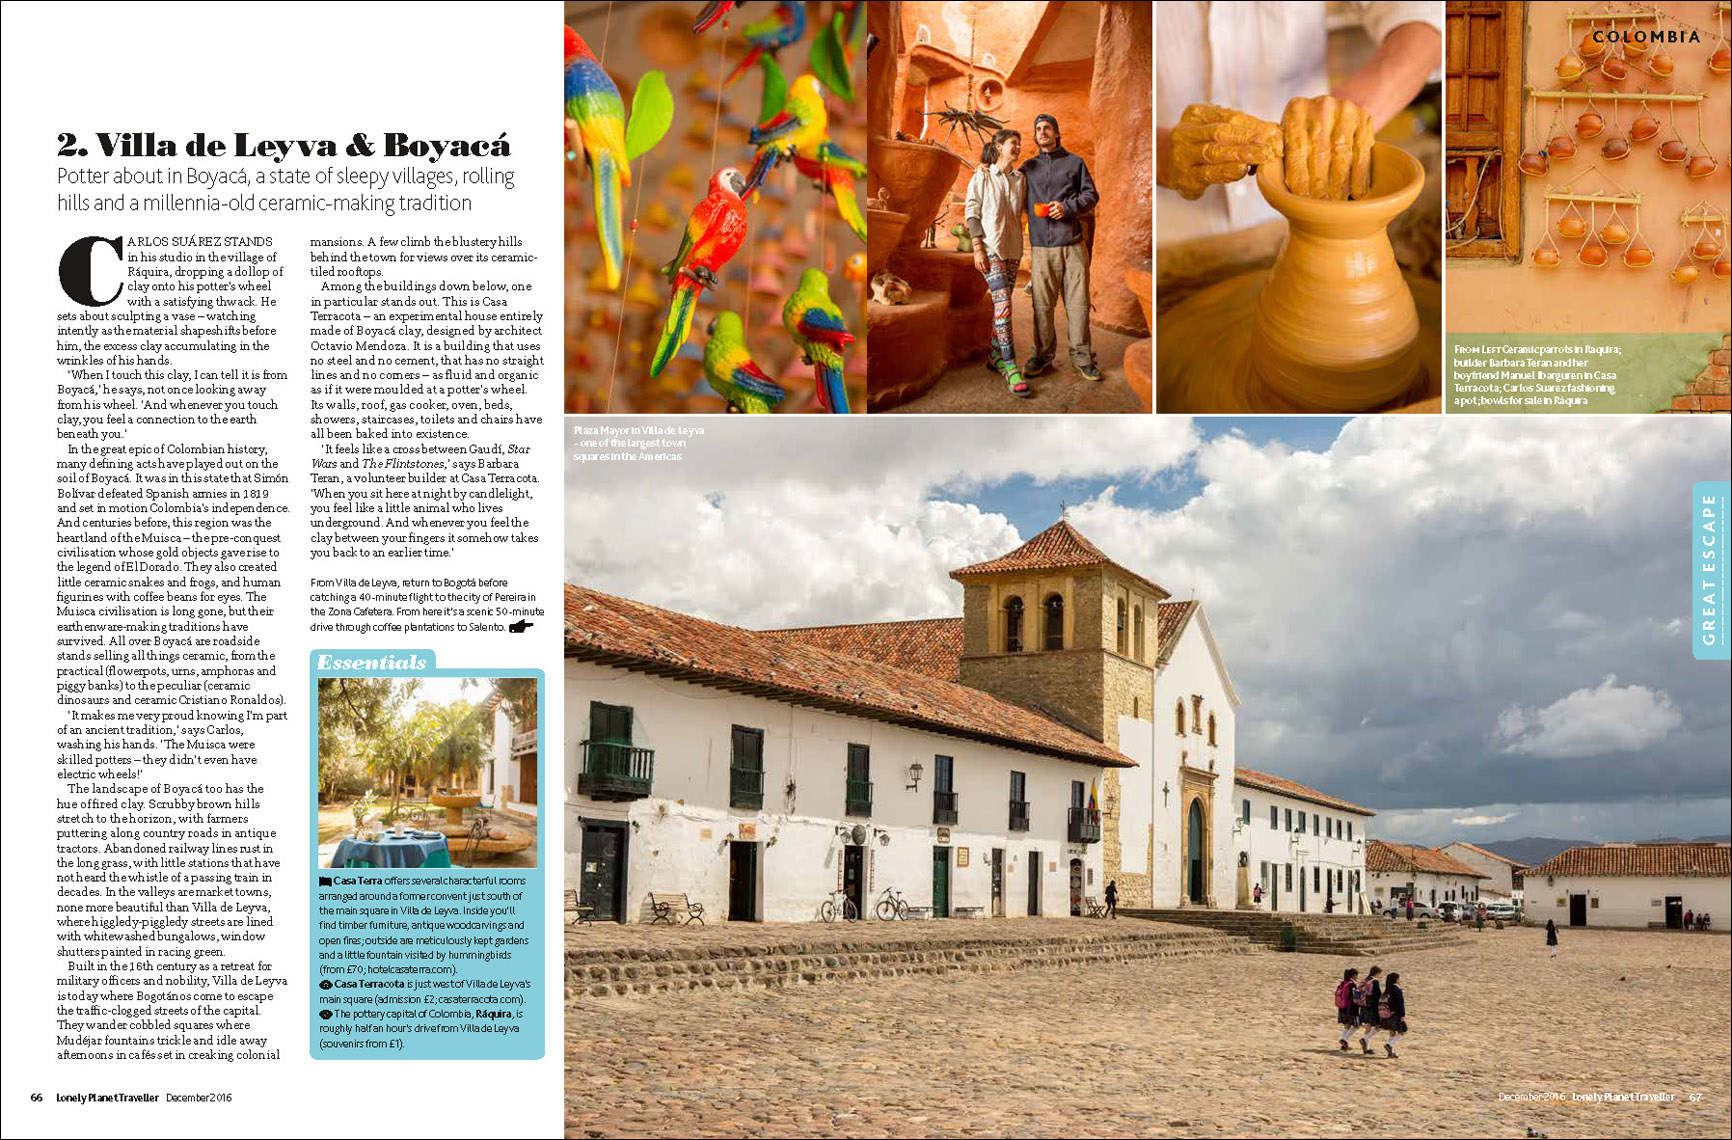 Kris_Davidson_Colombia_Lonely_Planet_Magazine_3